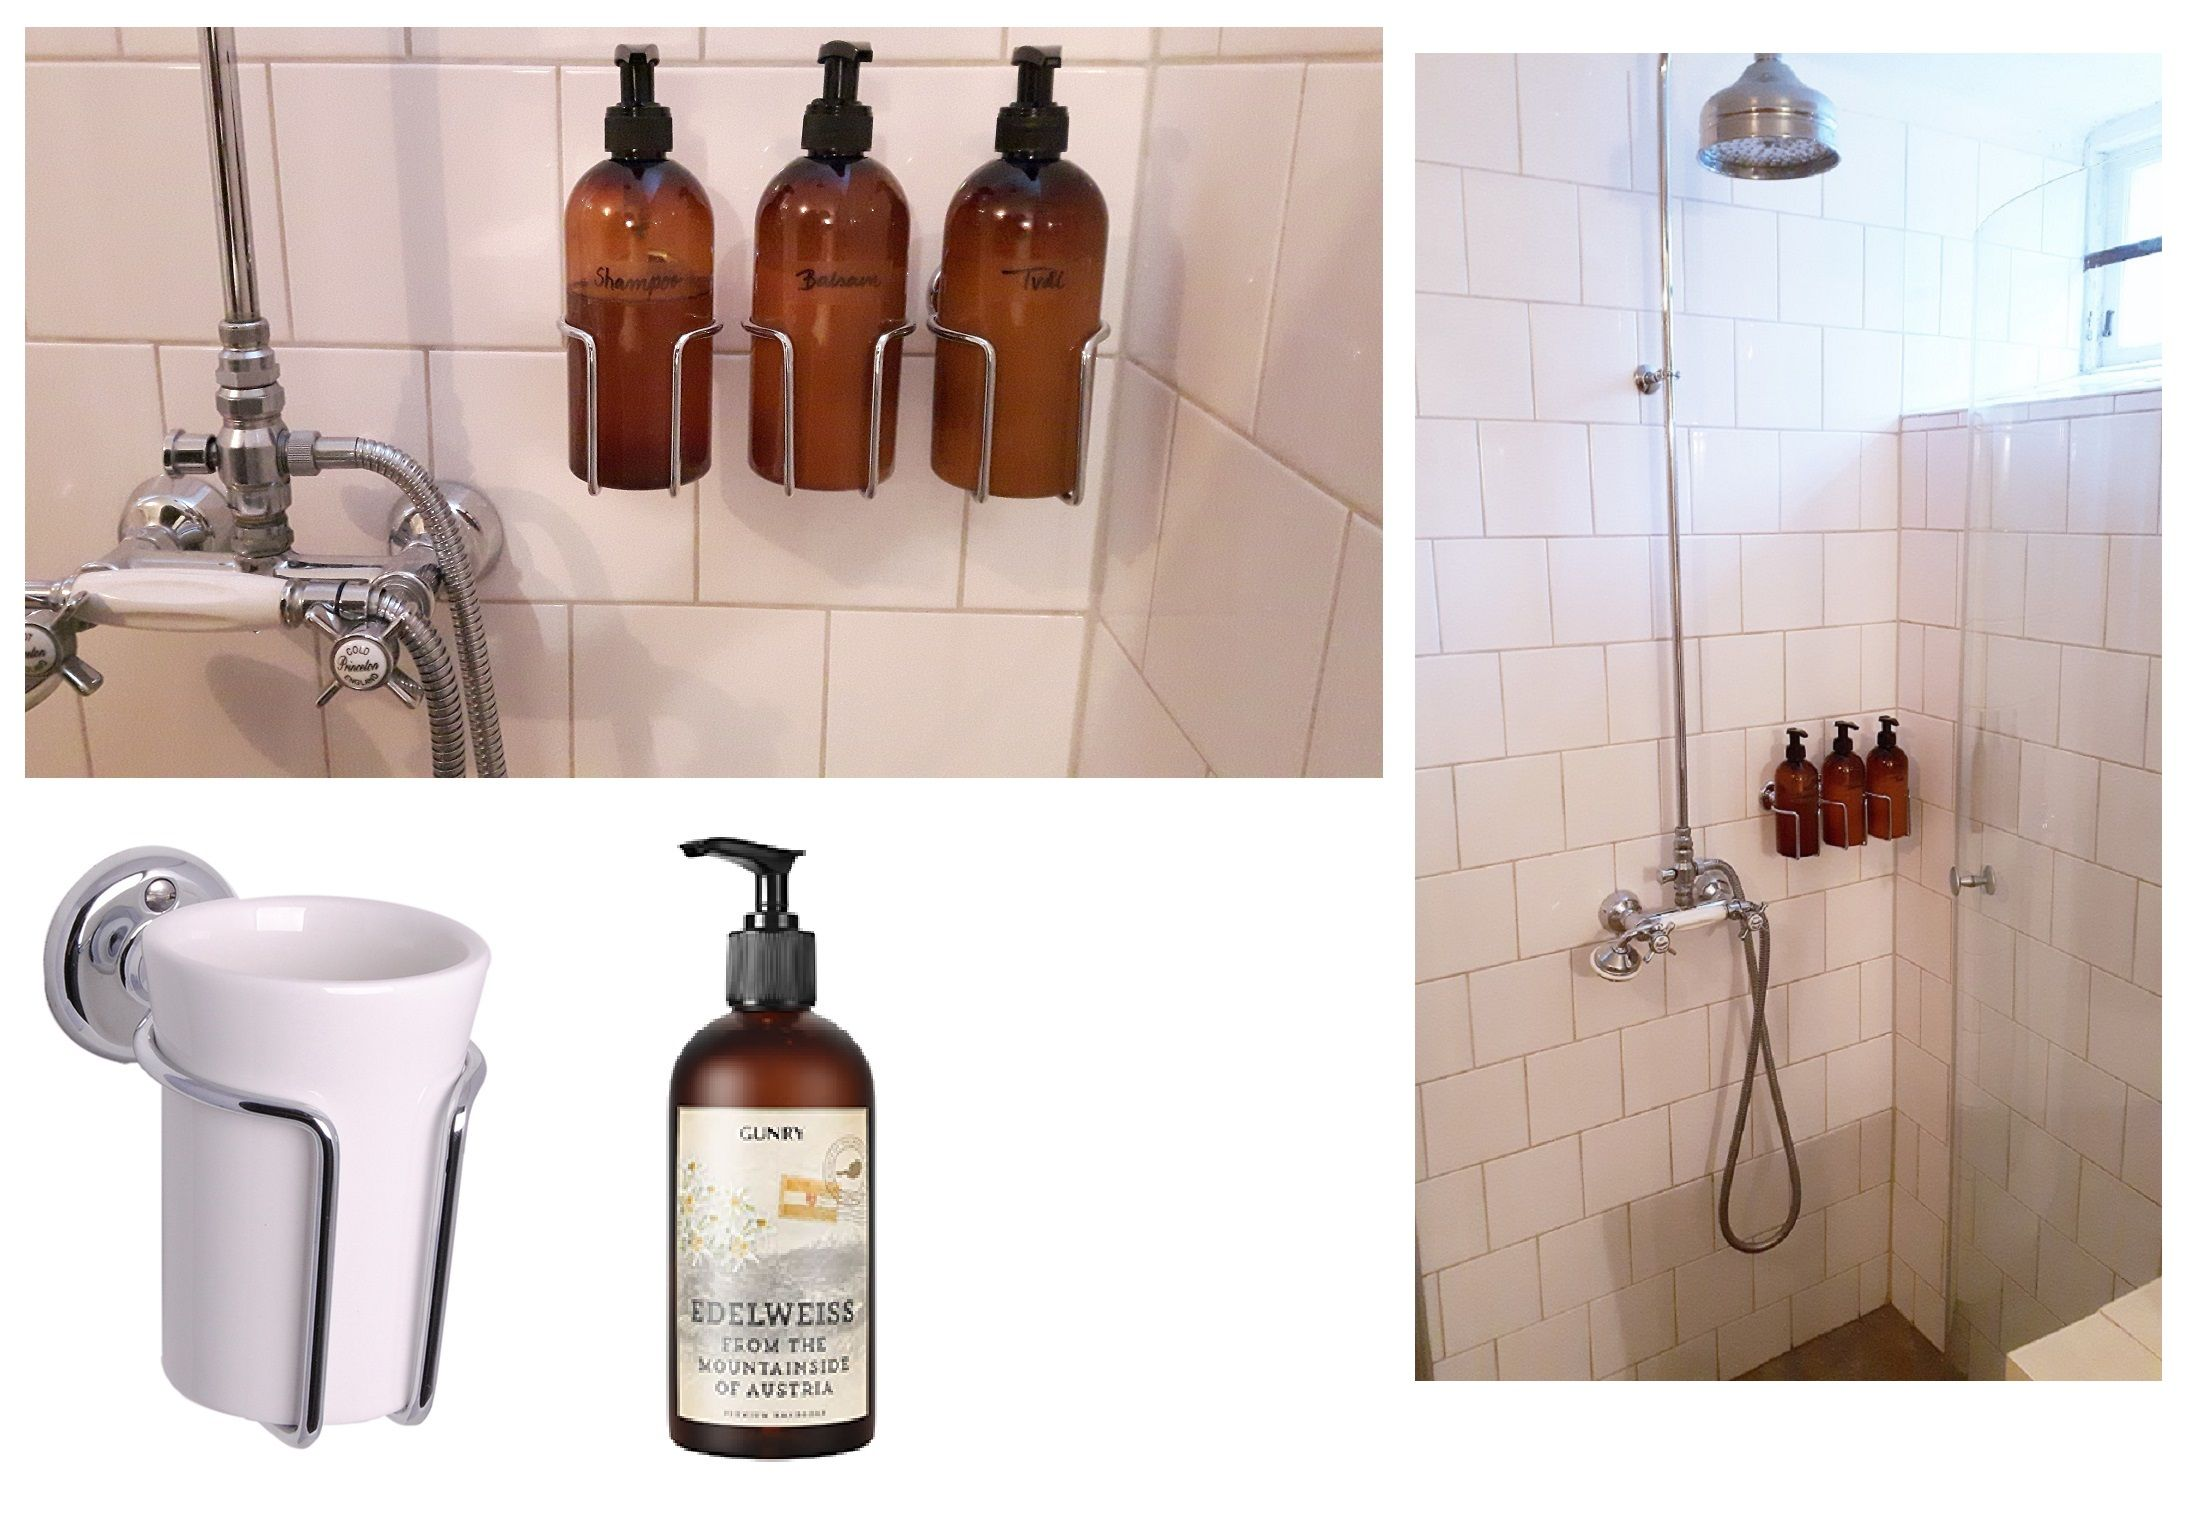 Soap And Shampoo Dispenser No More Bottles On The Floor In The Shower Wall Mounted Shampoo